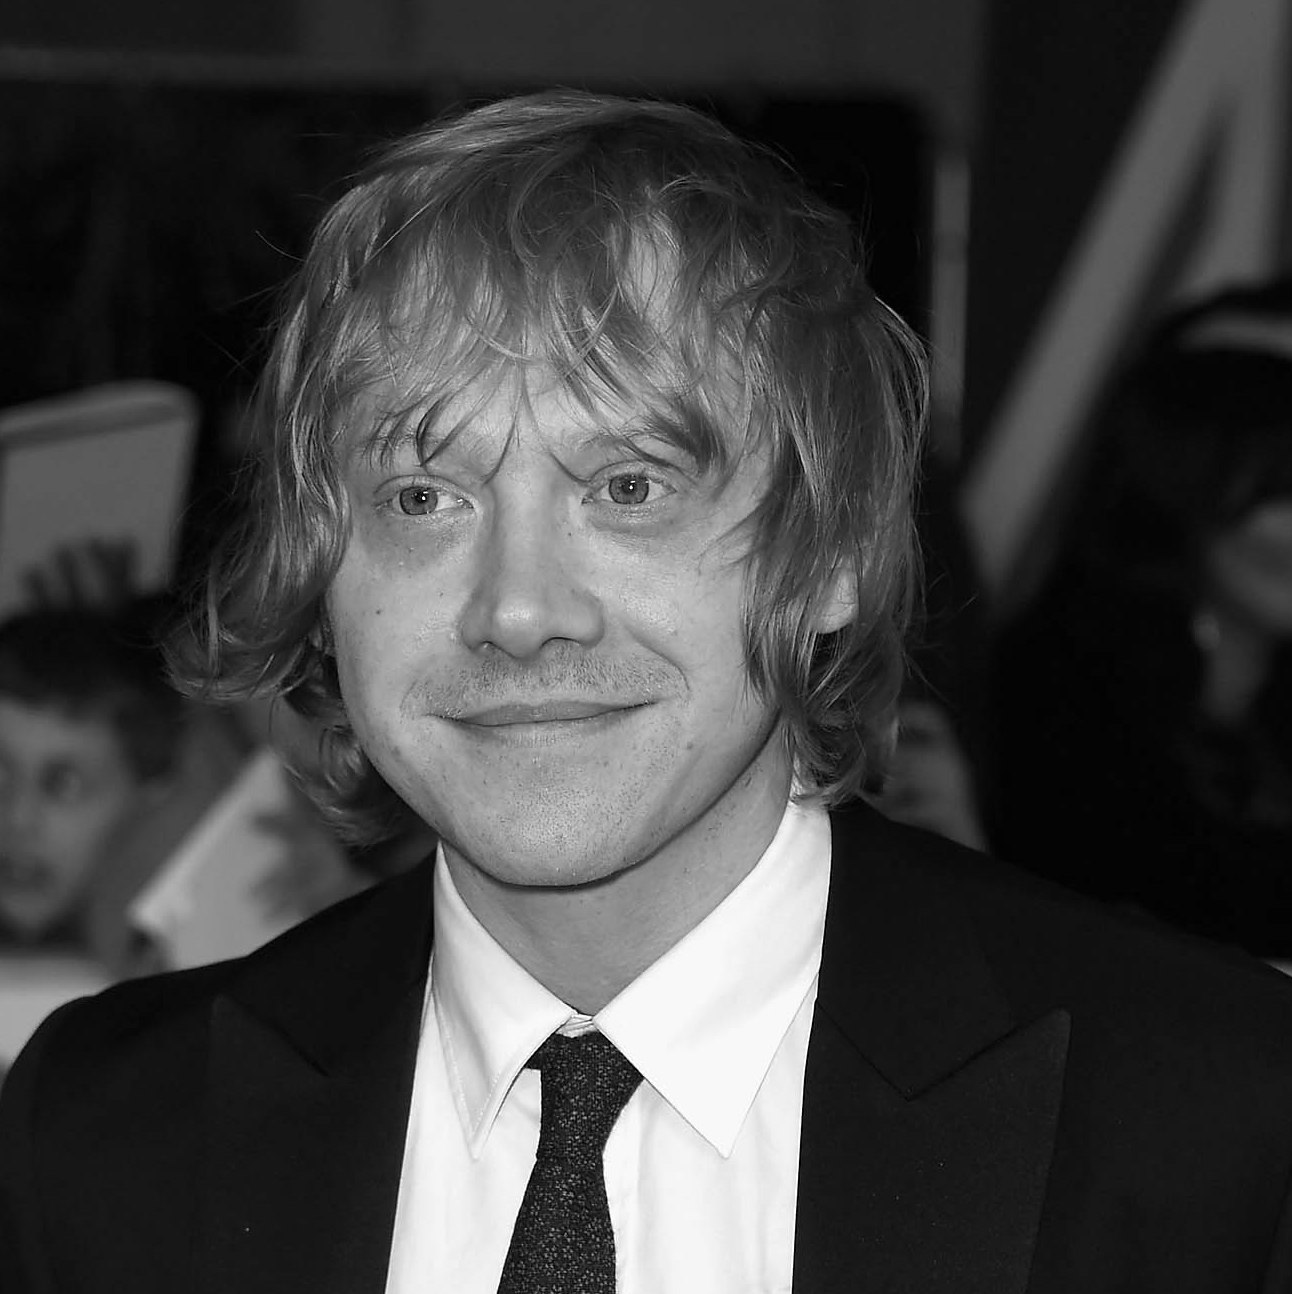 LONDON, ENGLAND - SEPTEMBER 28:  Rupert Grint attends the Pride of Britain awards at The Grosvenor House Hotel on September 28, 2015 in London, England.  (Photo by Gareth Cattermole/Getty Images)